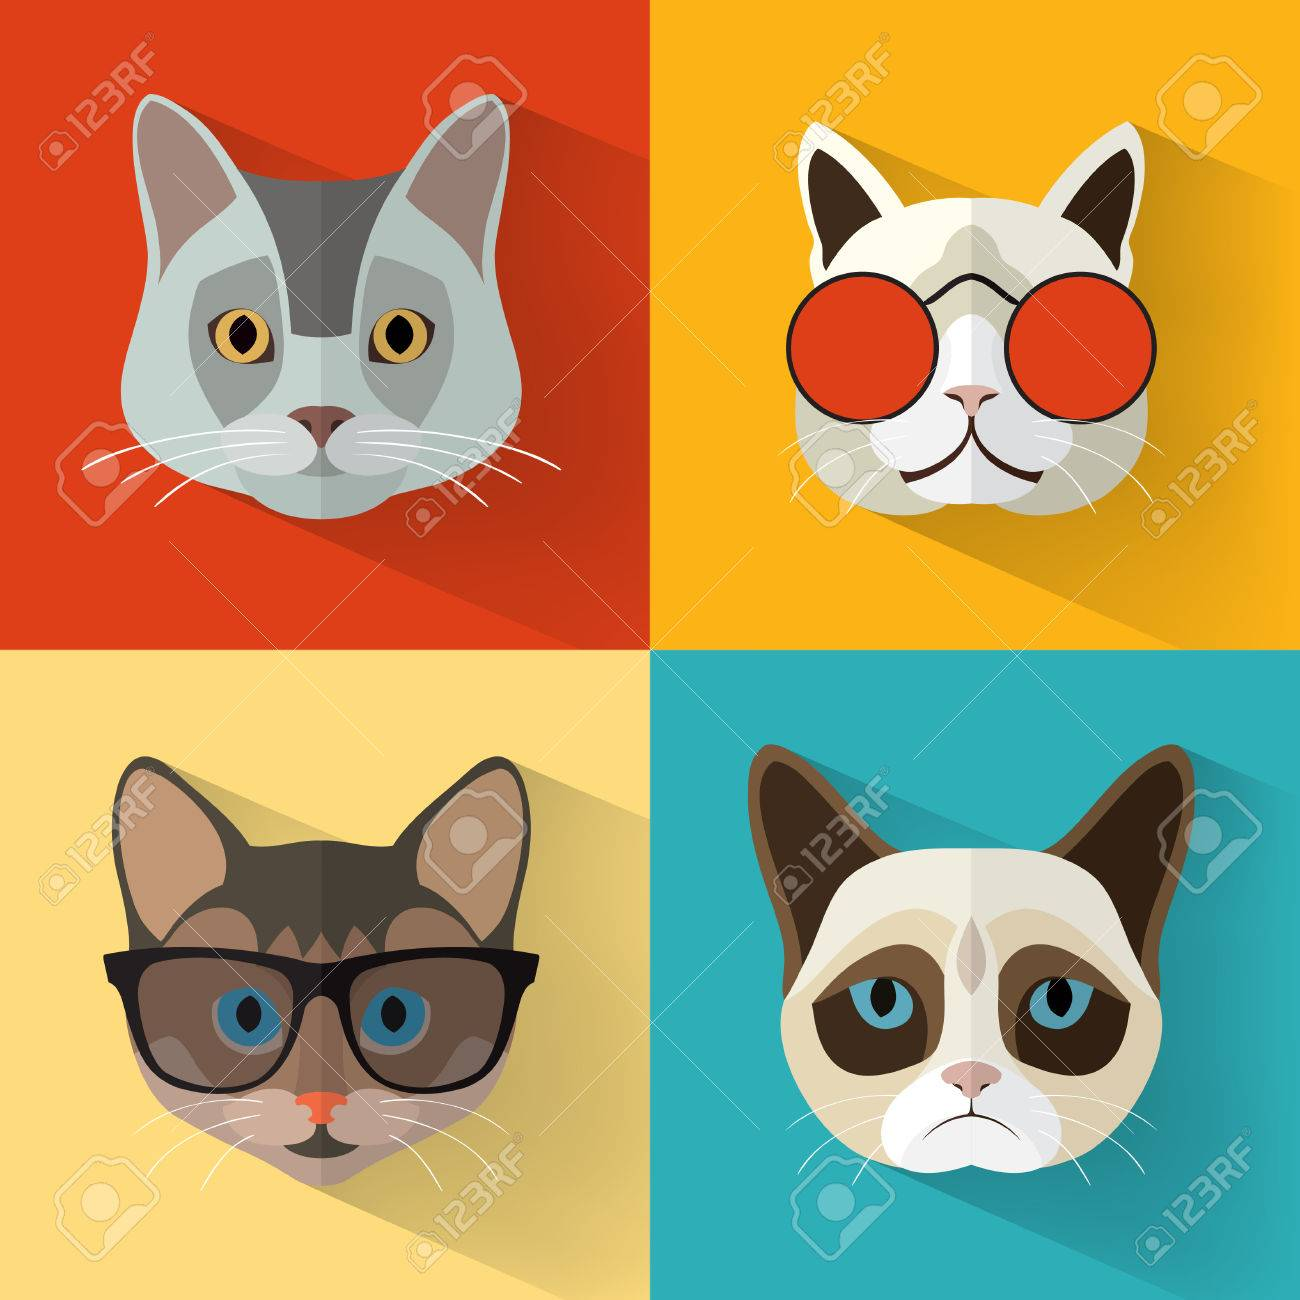 Animal Portrait Set with Flat Design/ Cat Collection / Vector Illustration Archivio Fotografico - 53348538